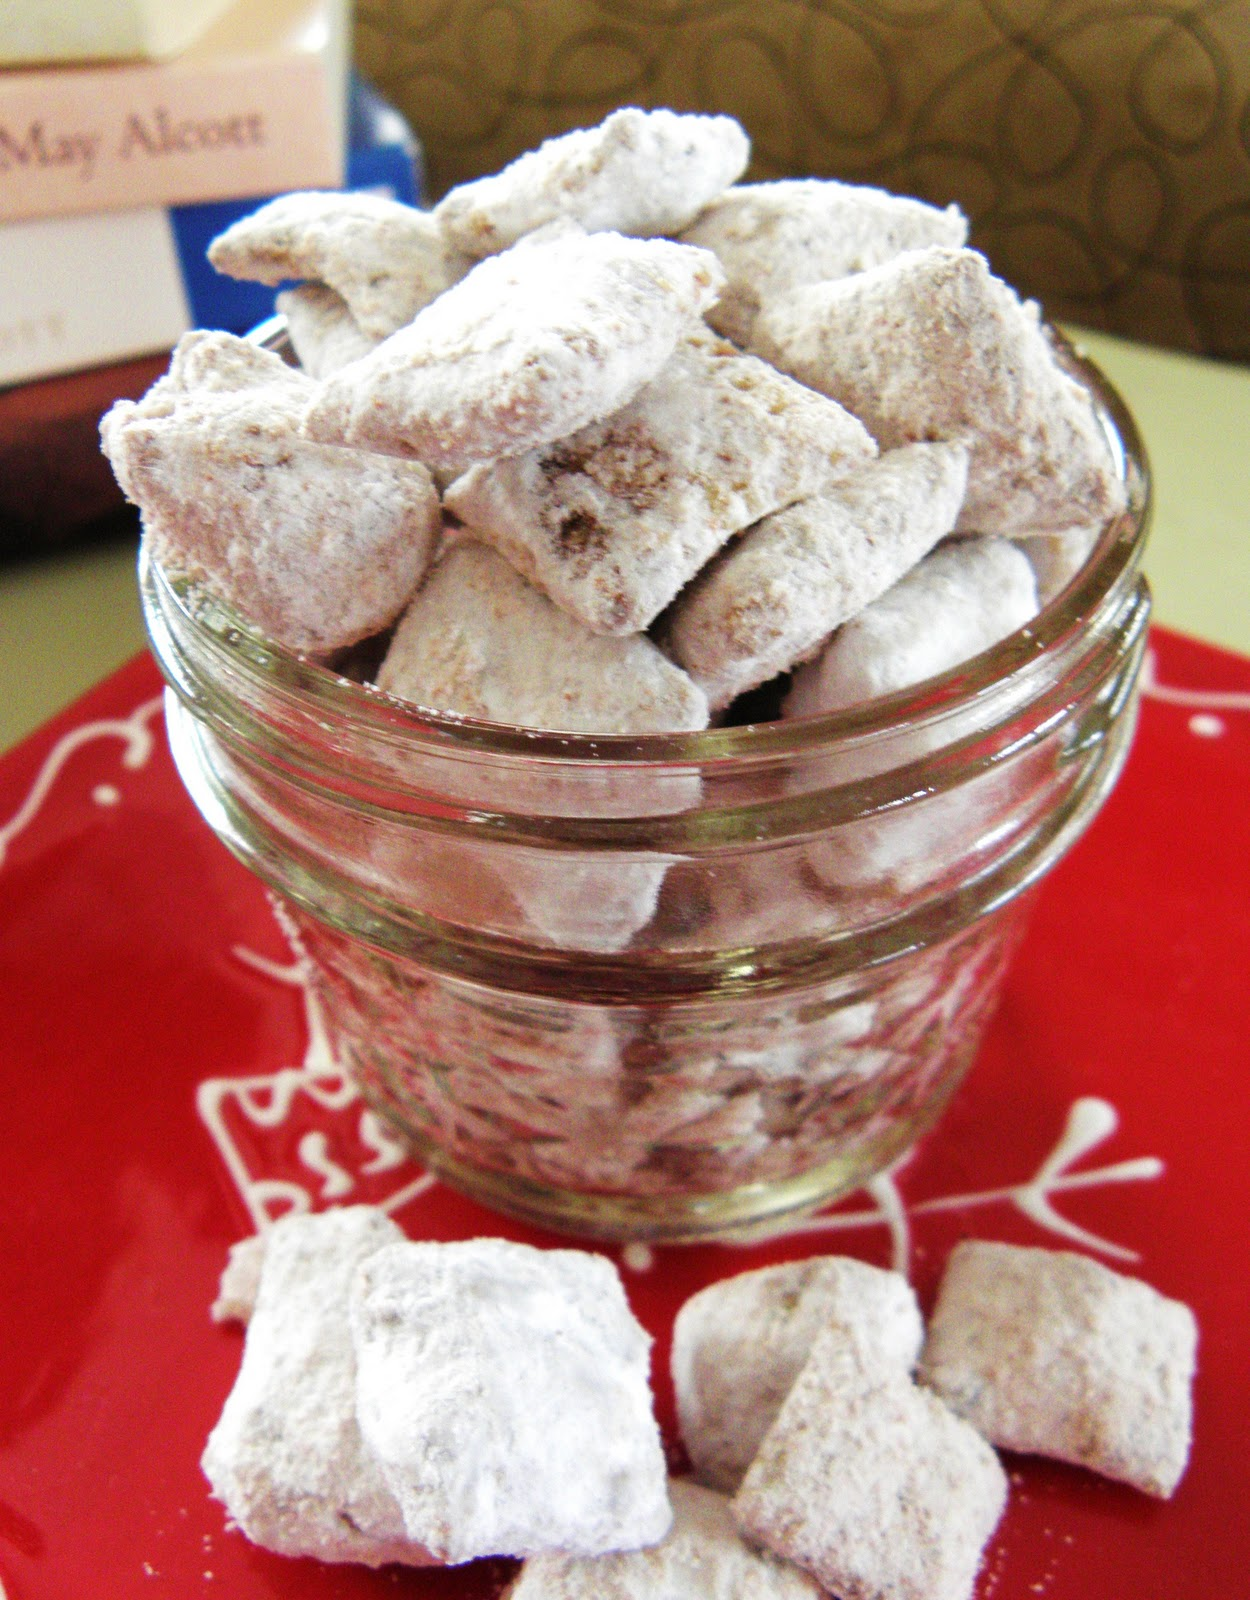 nutella puppy chow - Christmas Puppy Chow